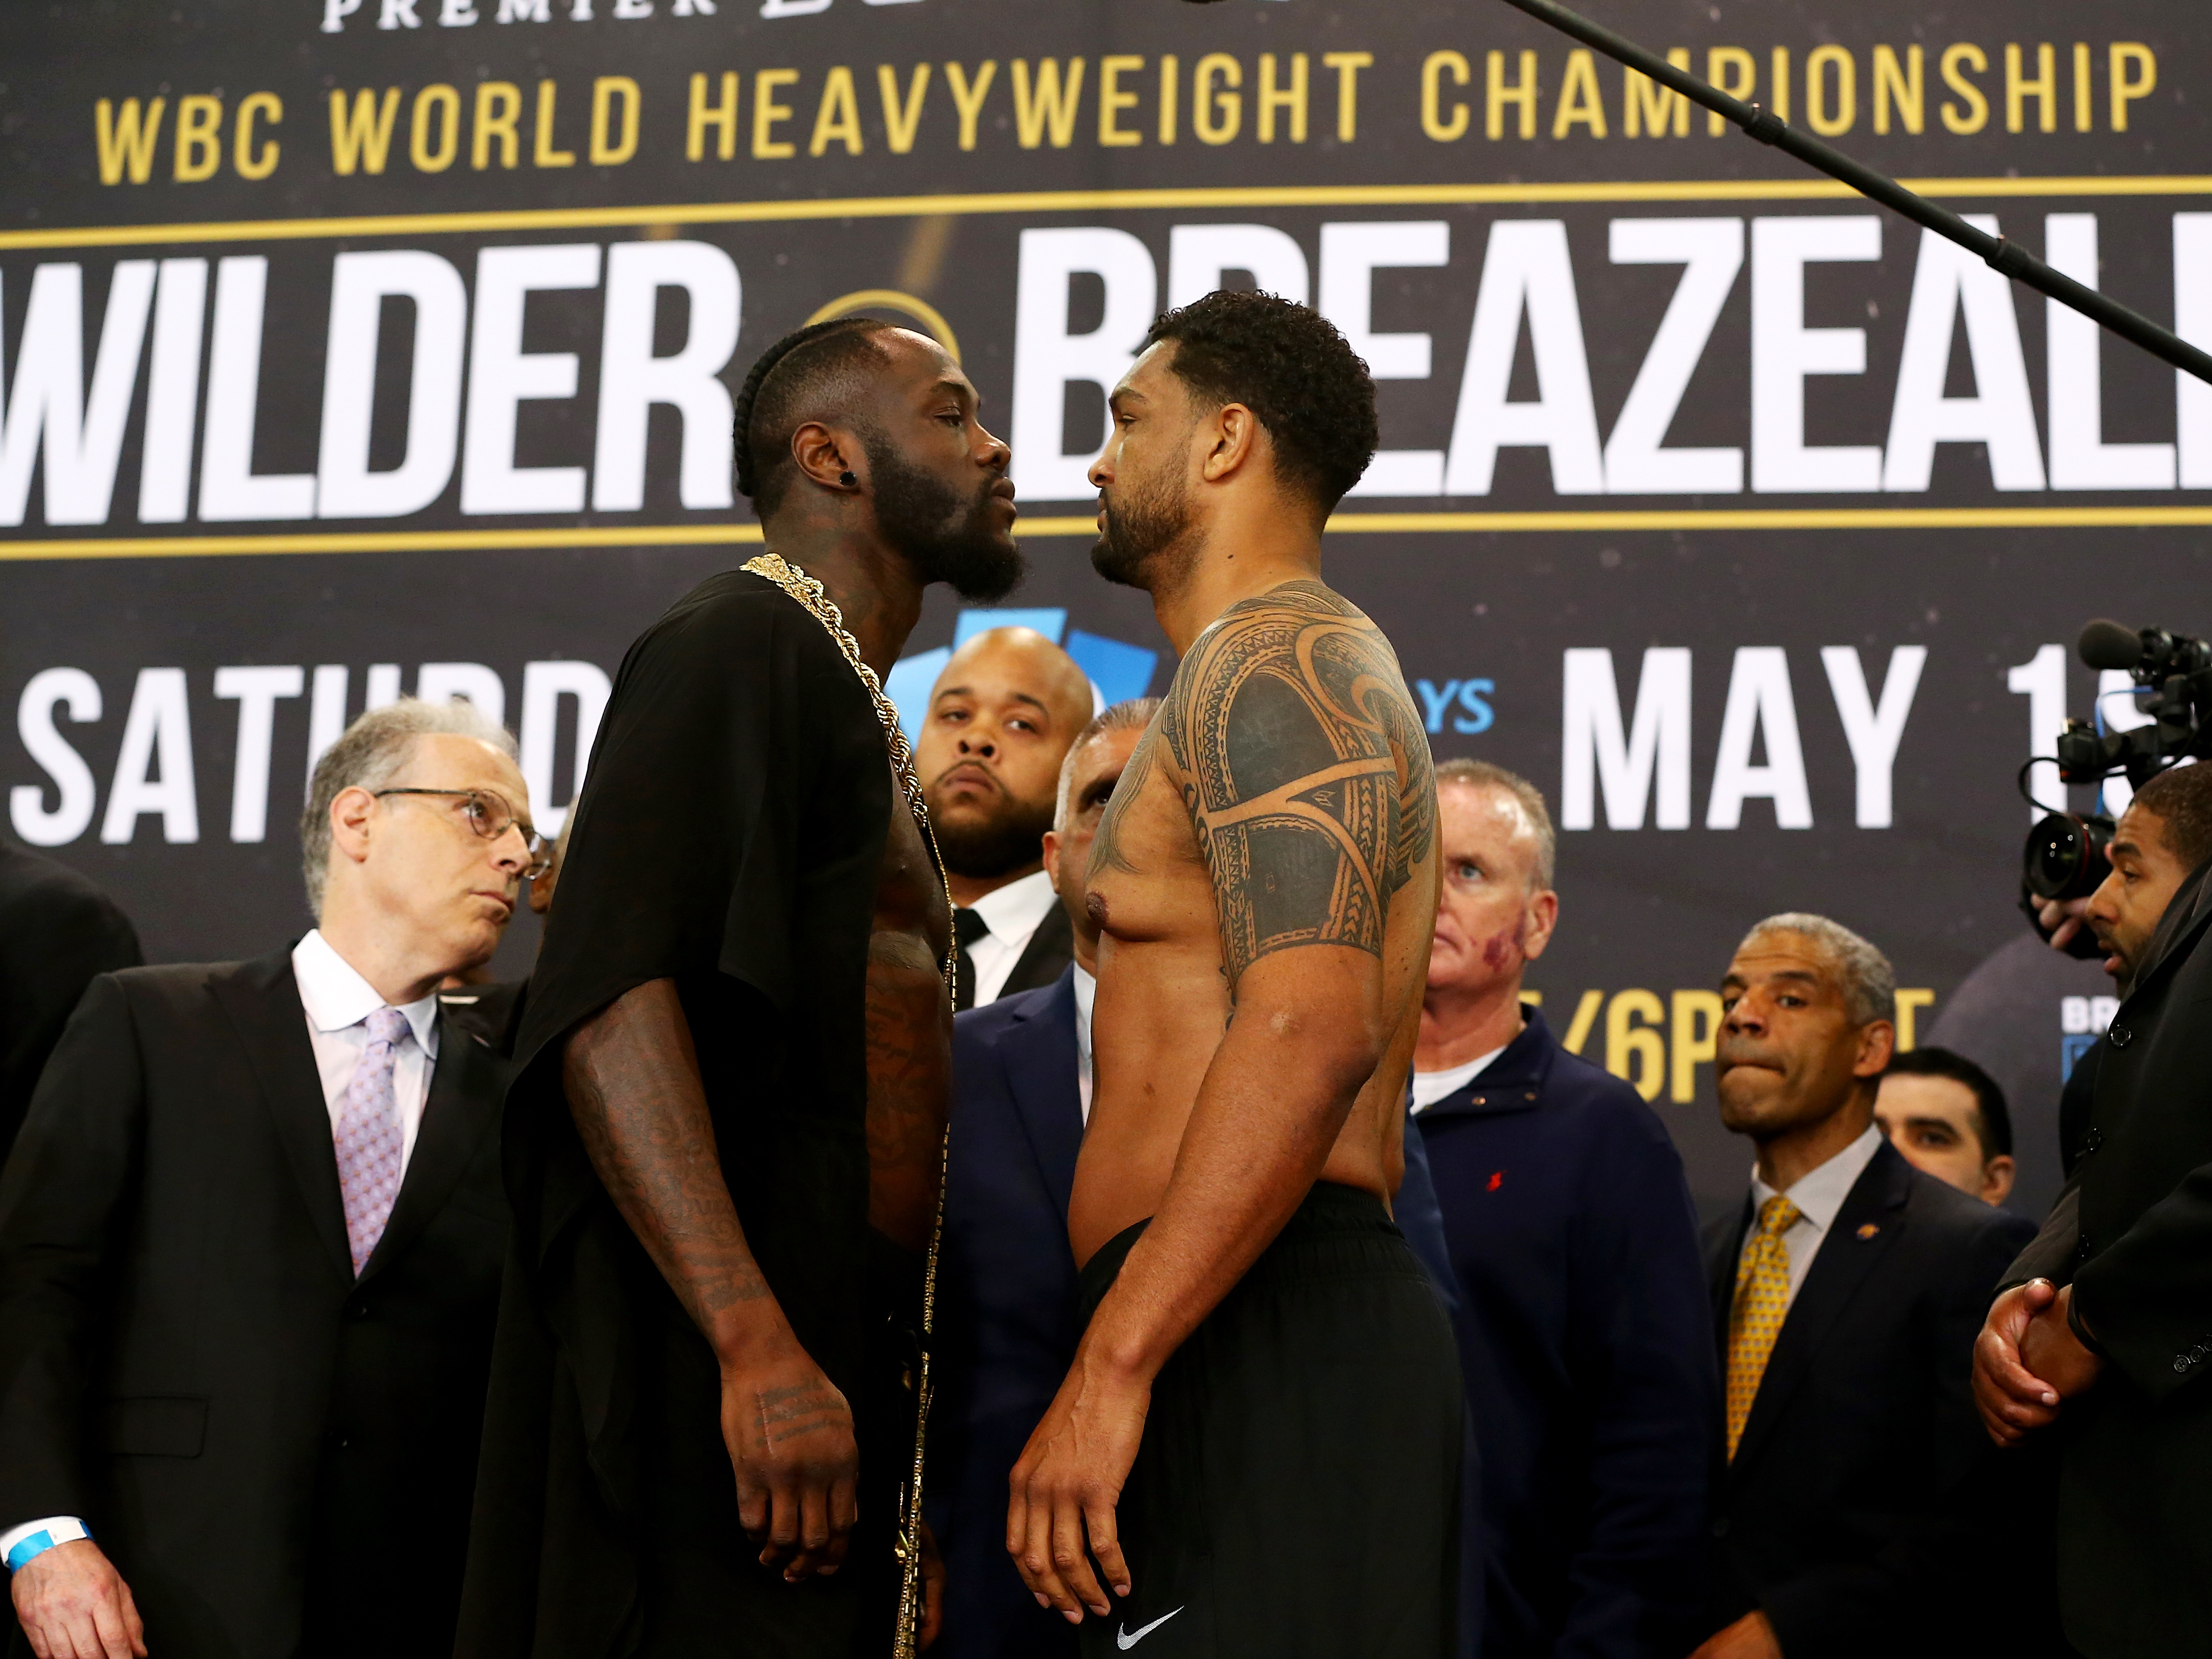 Deontay Wilder v Dominic Breazeale - Weigh-in